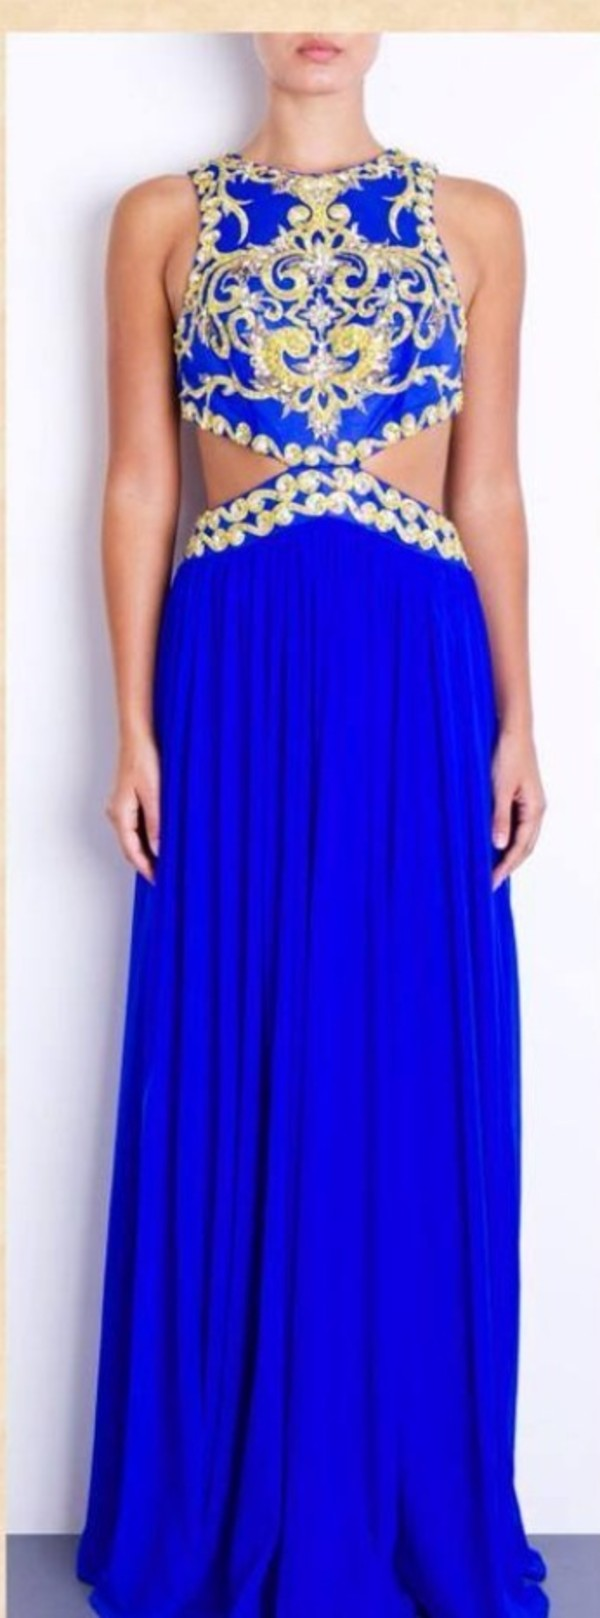 dress blue dress prom prom dress prom dress gold gold dress long dress floor length dress